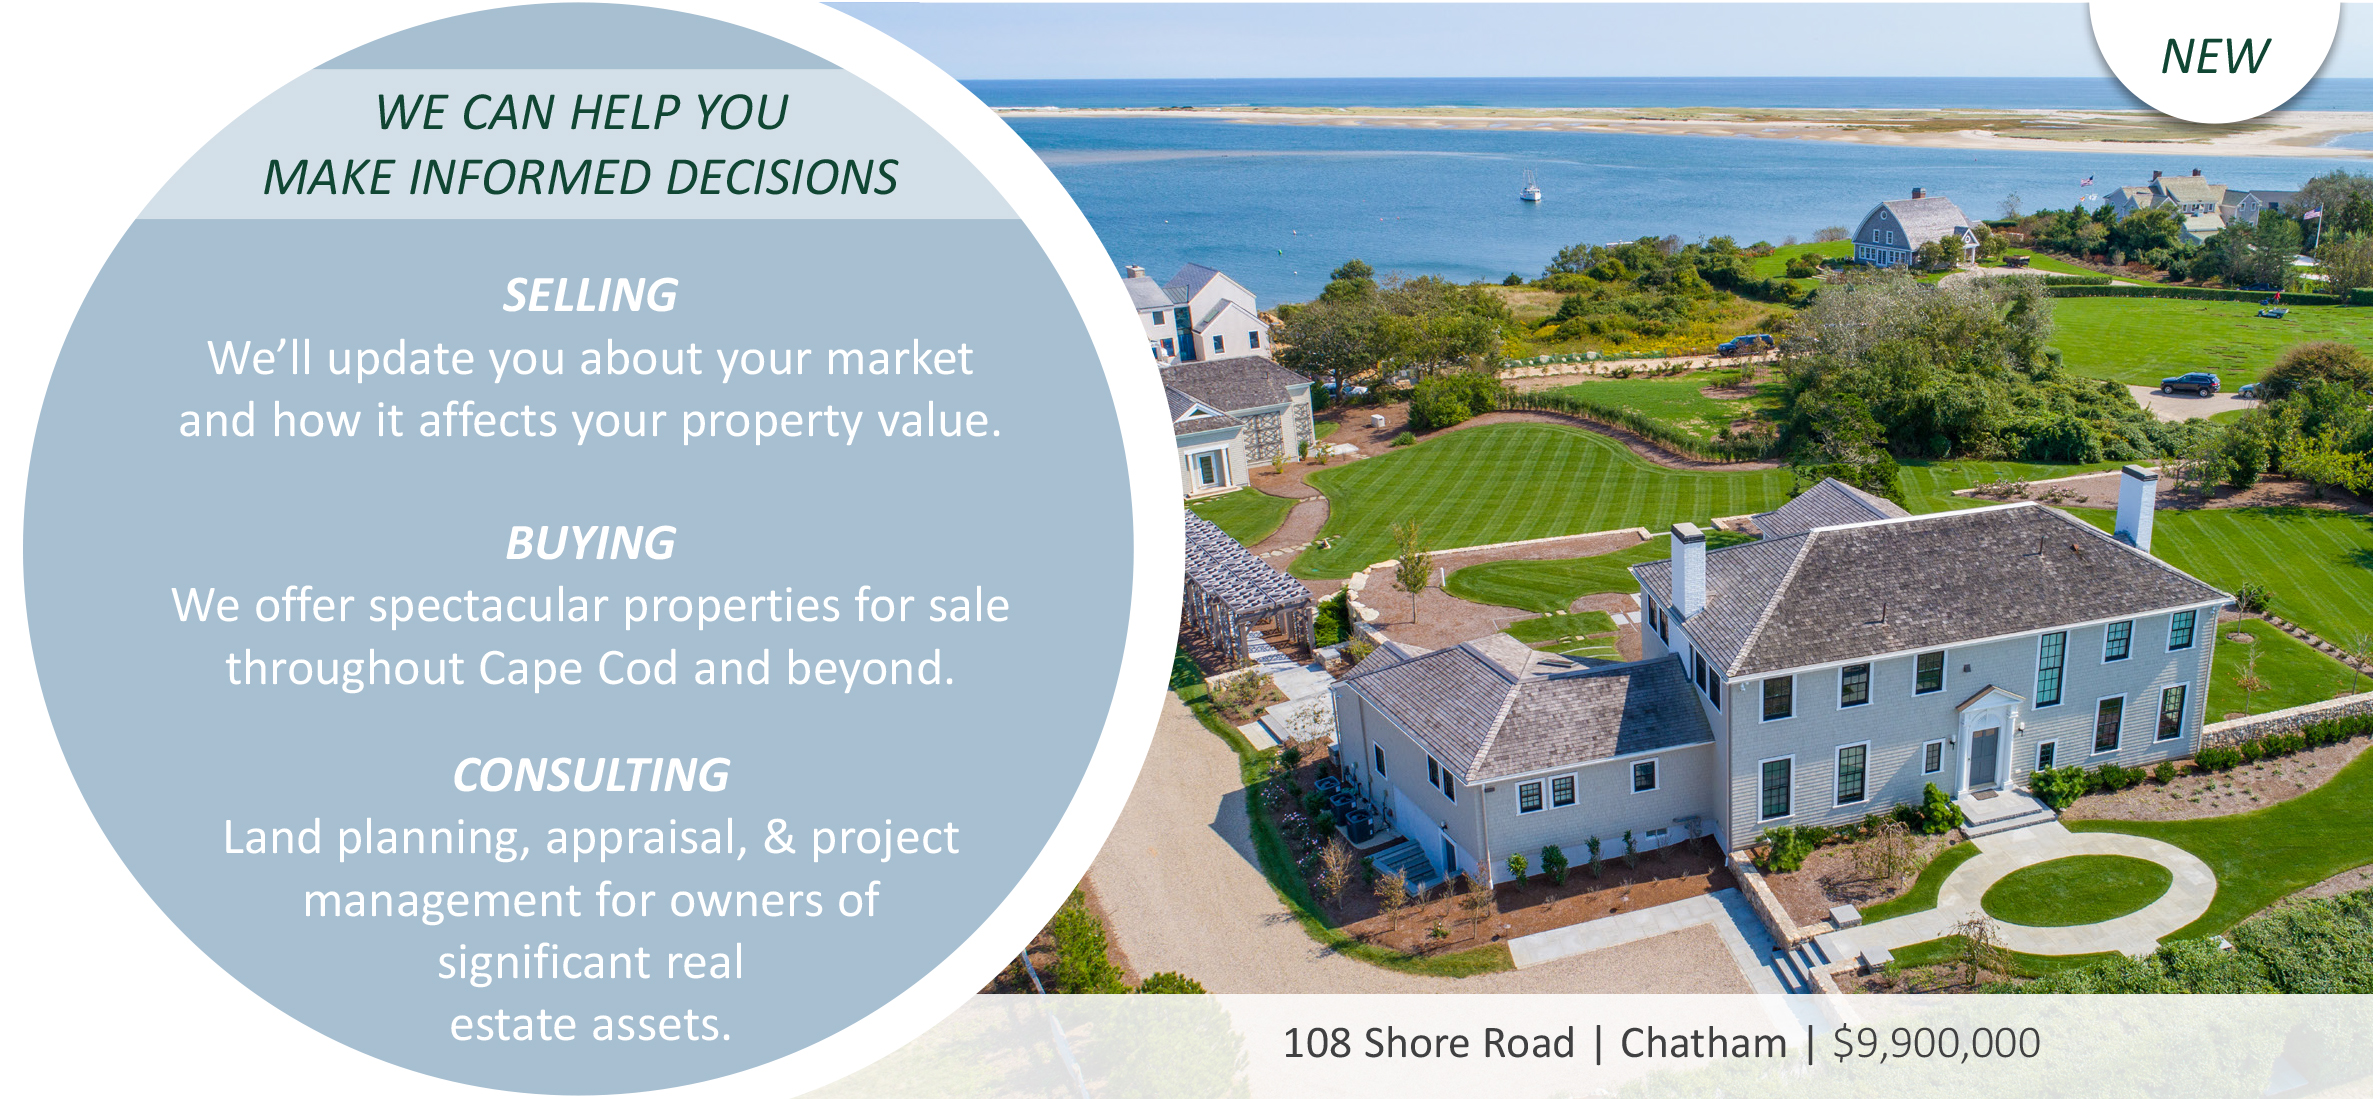 New Listing in Chatham, MA